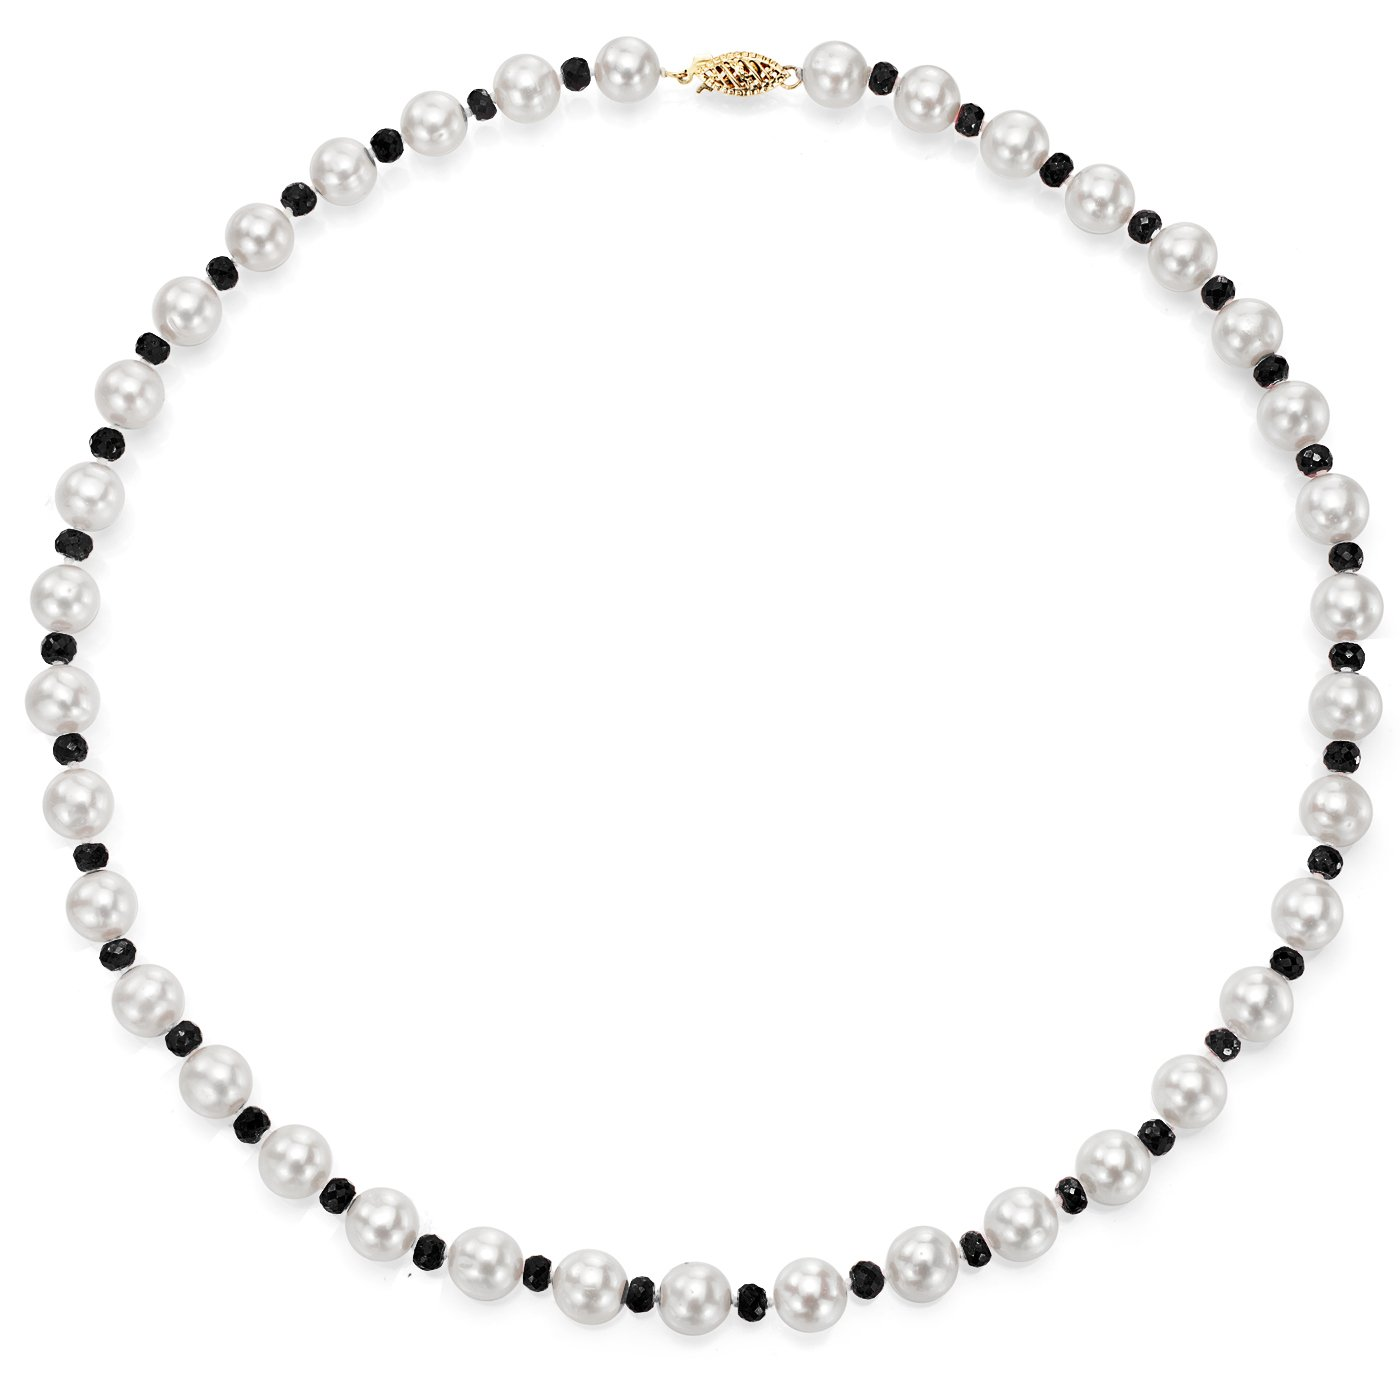 14k Yellow Gold 8-8.5mm White Freshwater Cultured Pearl and 4-4.5mm Simulated Onyx Necklace, 18''